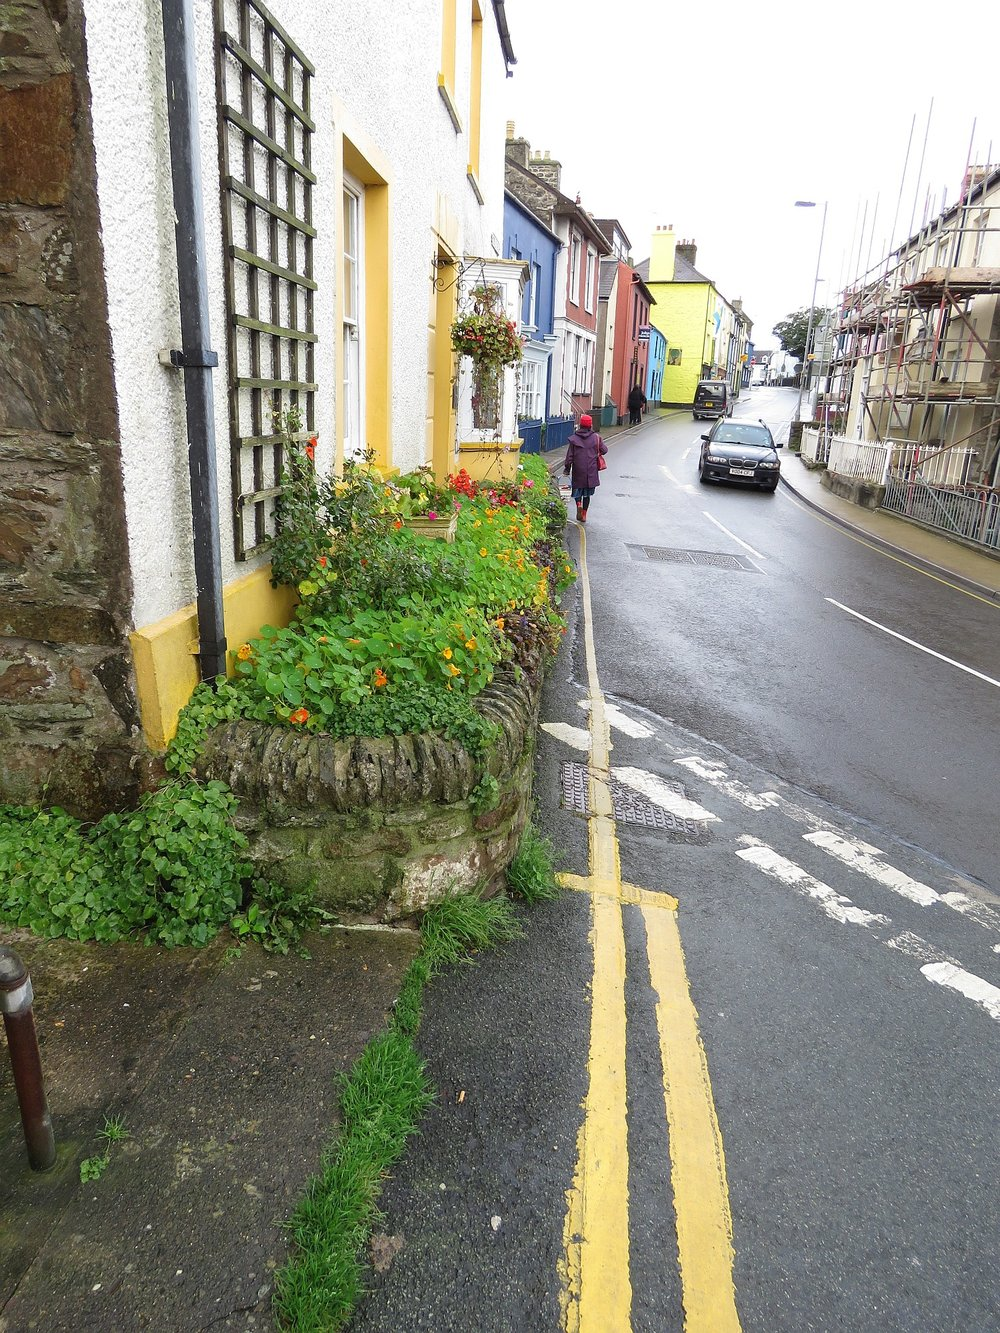 Down the road into Fishguard